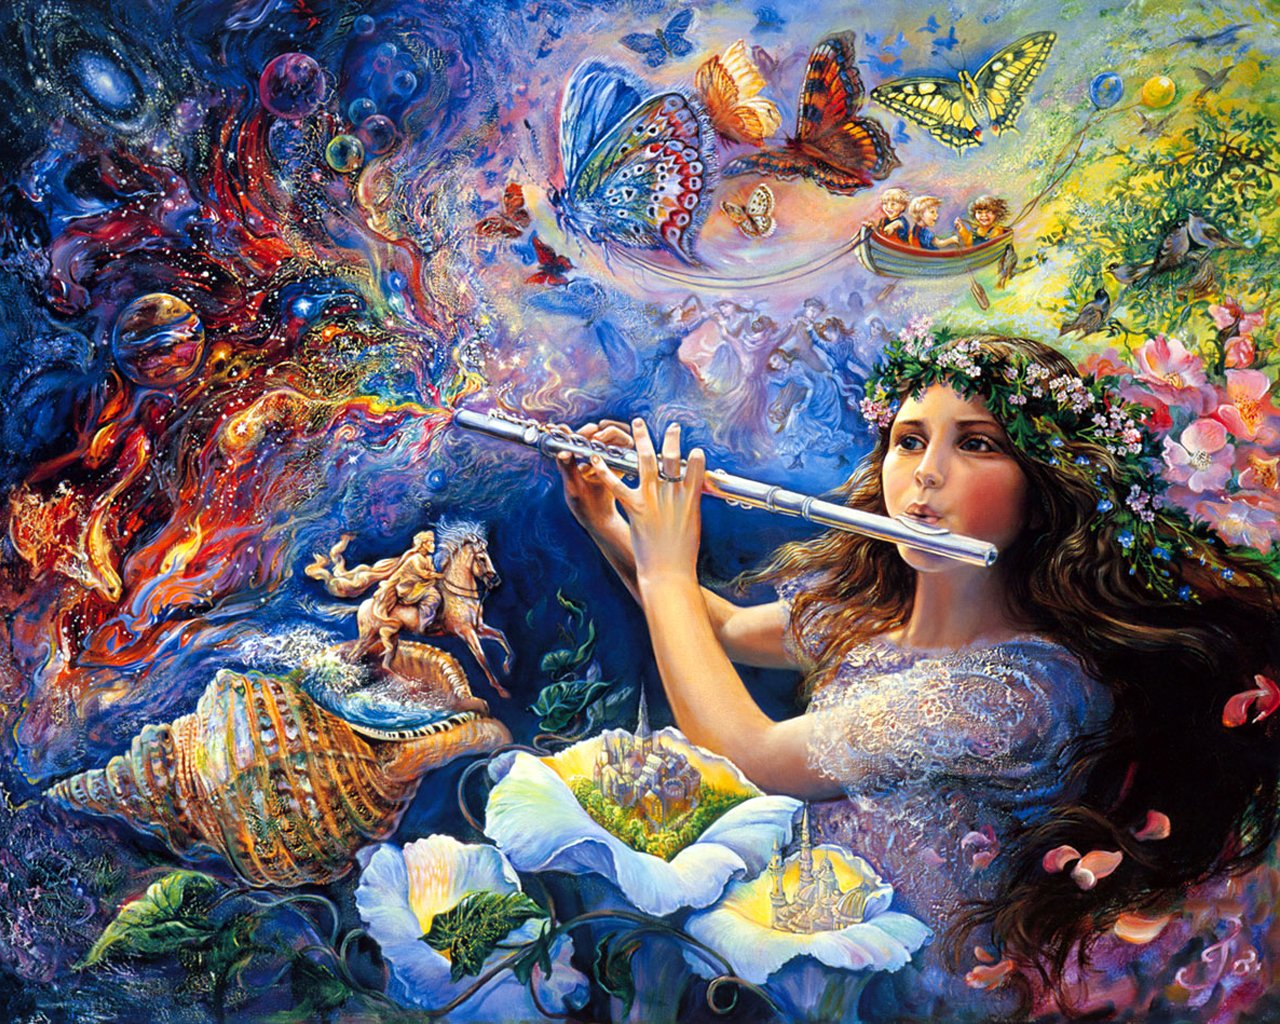 mystical fantasy paintings kb wall josep